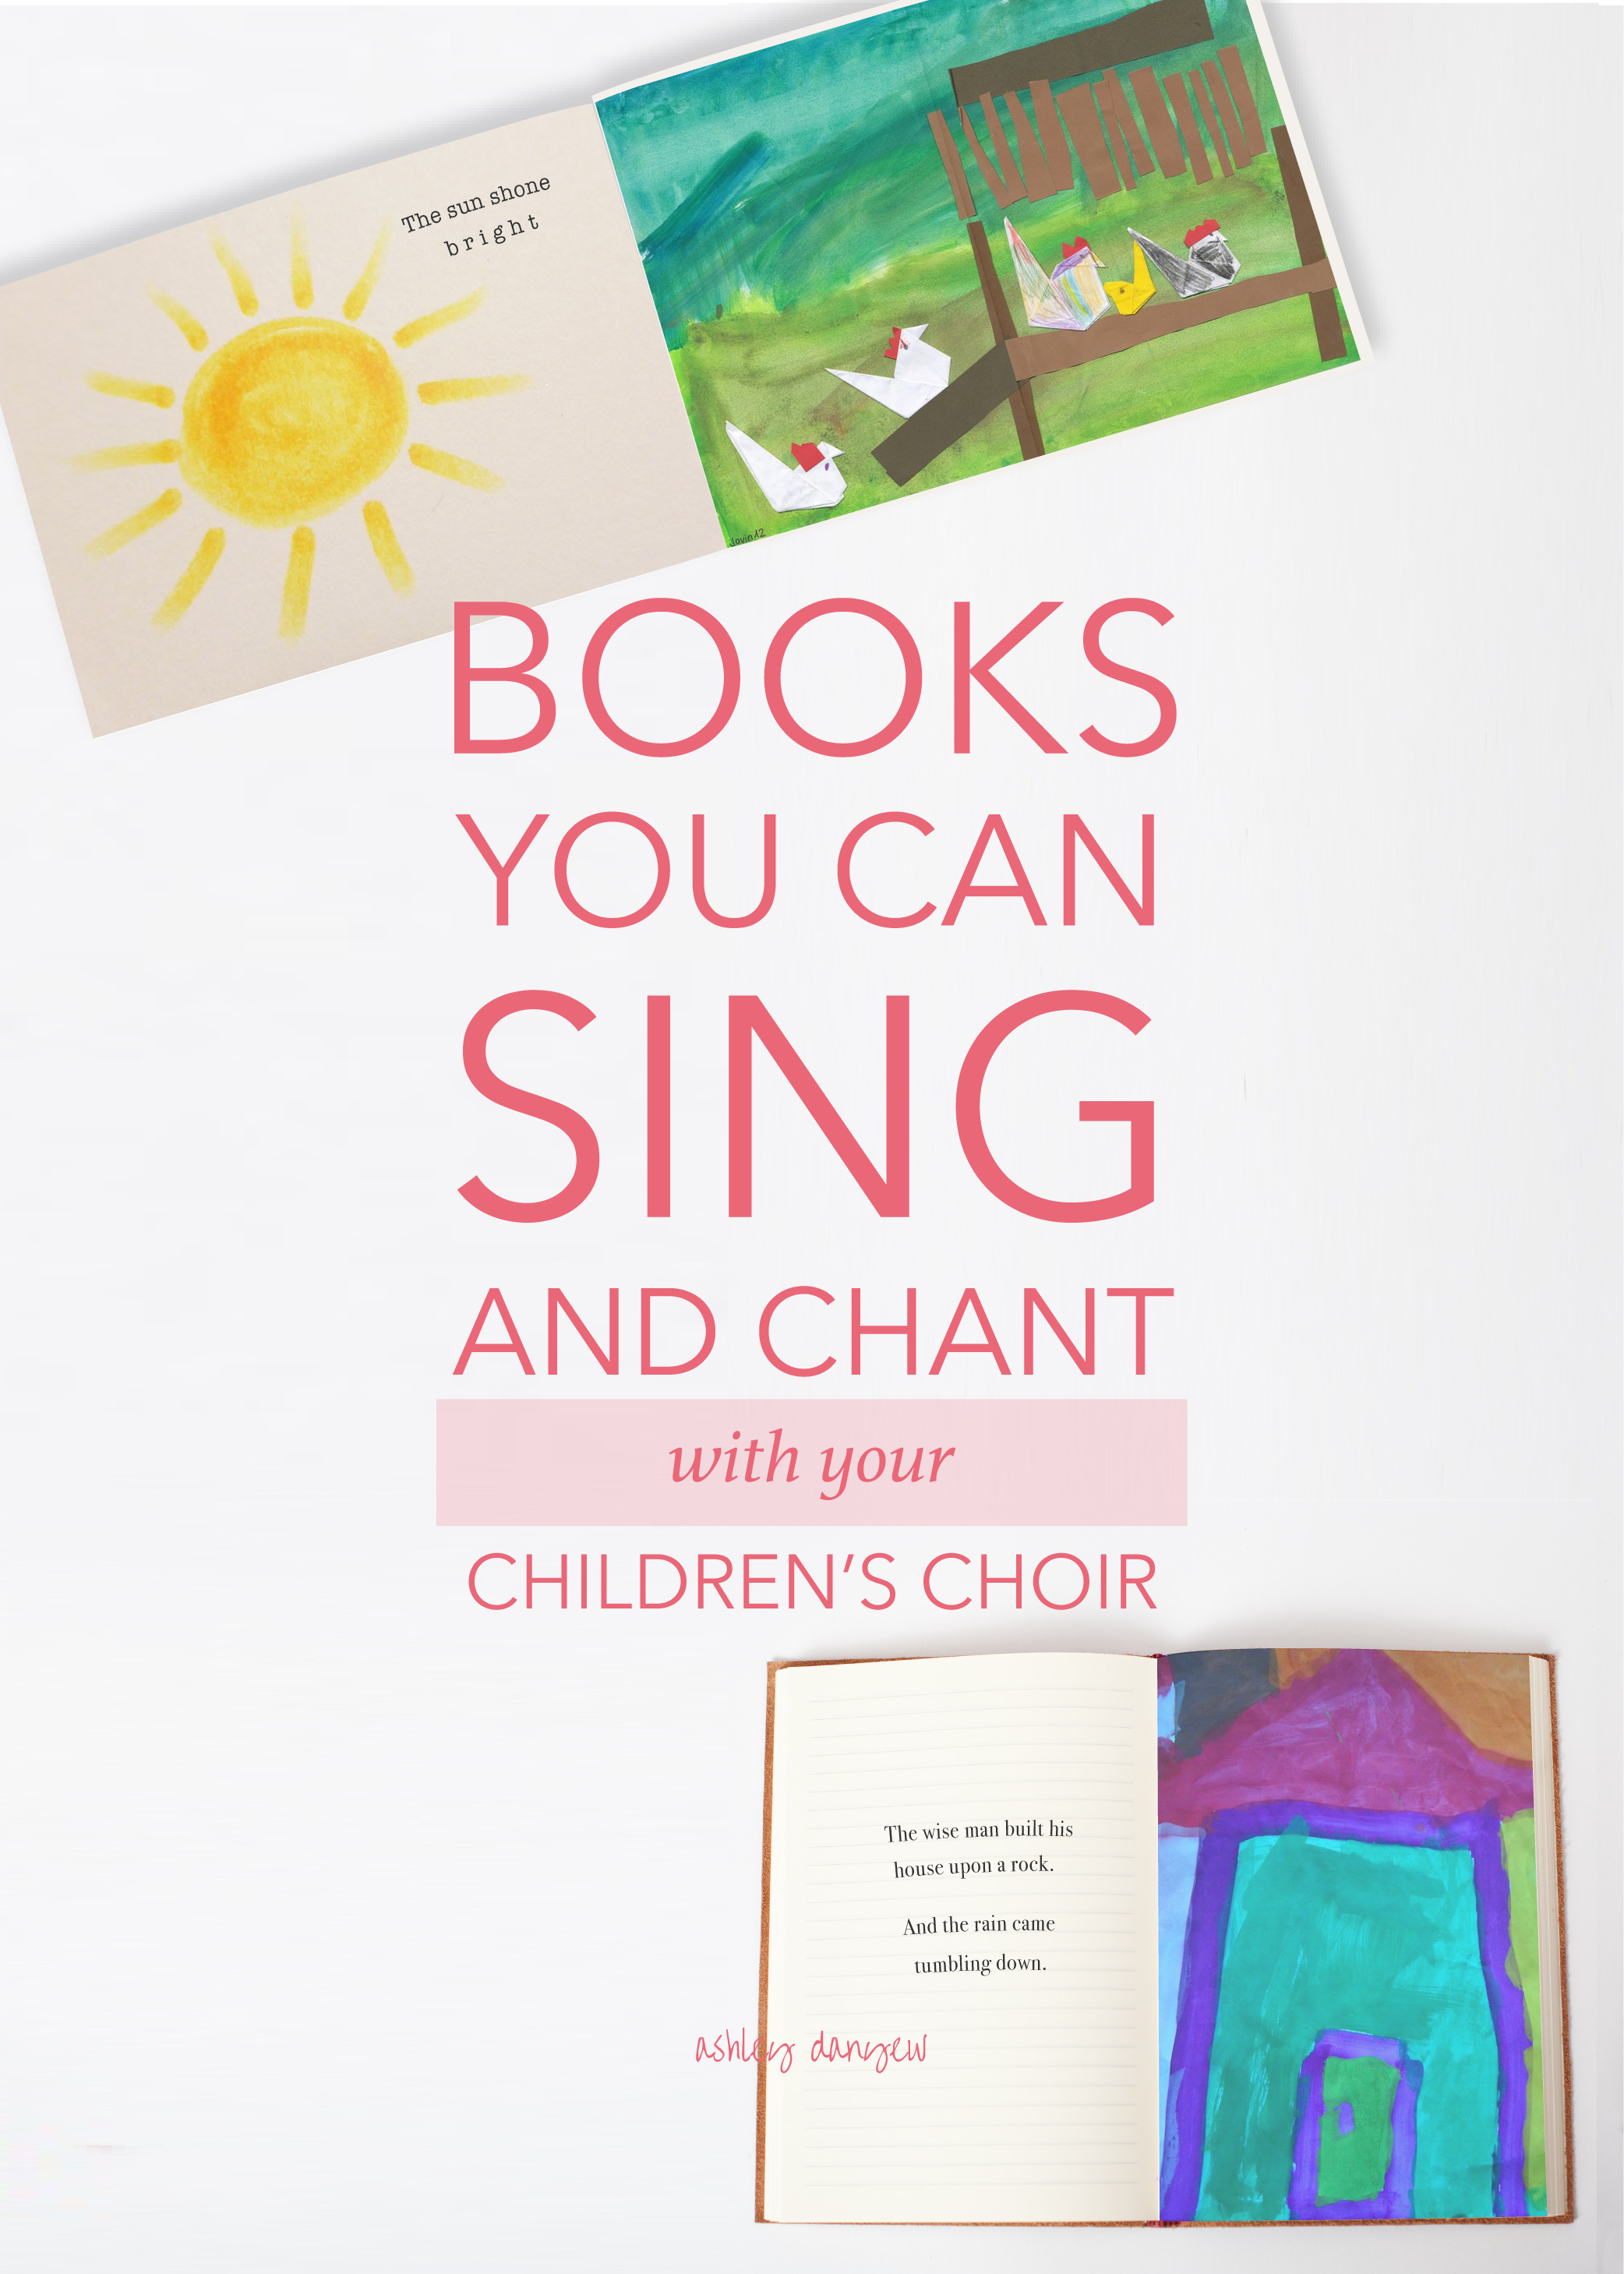 Books You Can Sing and Chant with Your Children's Choir